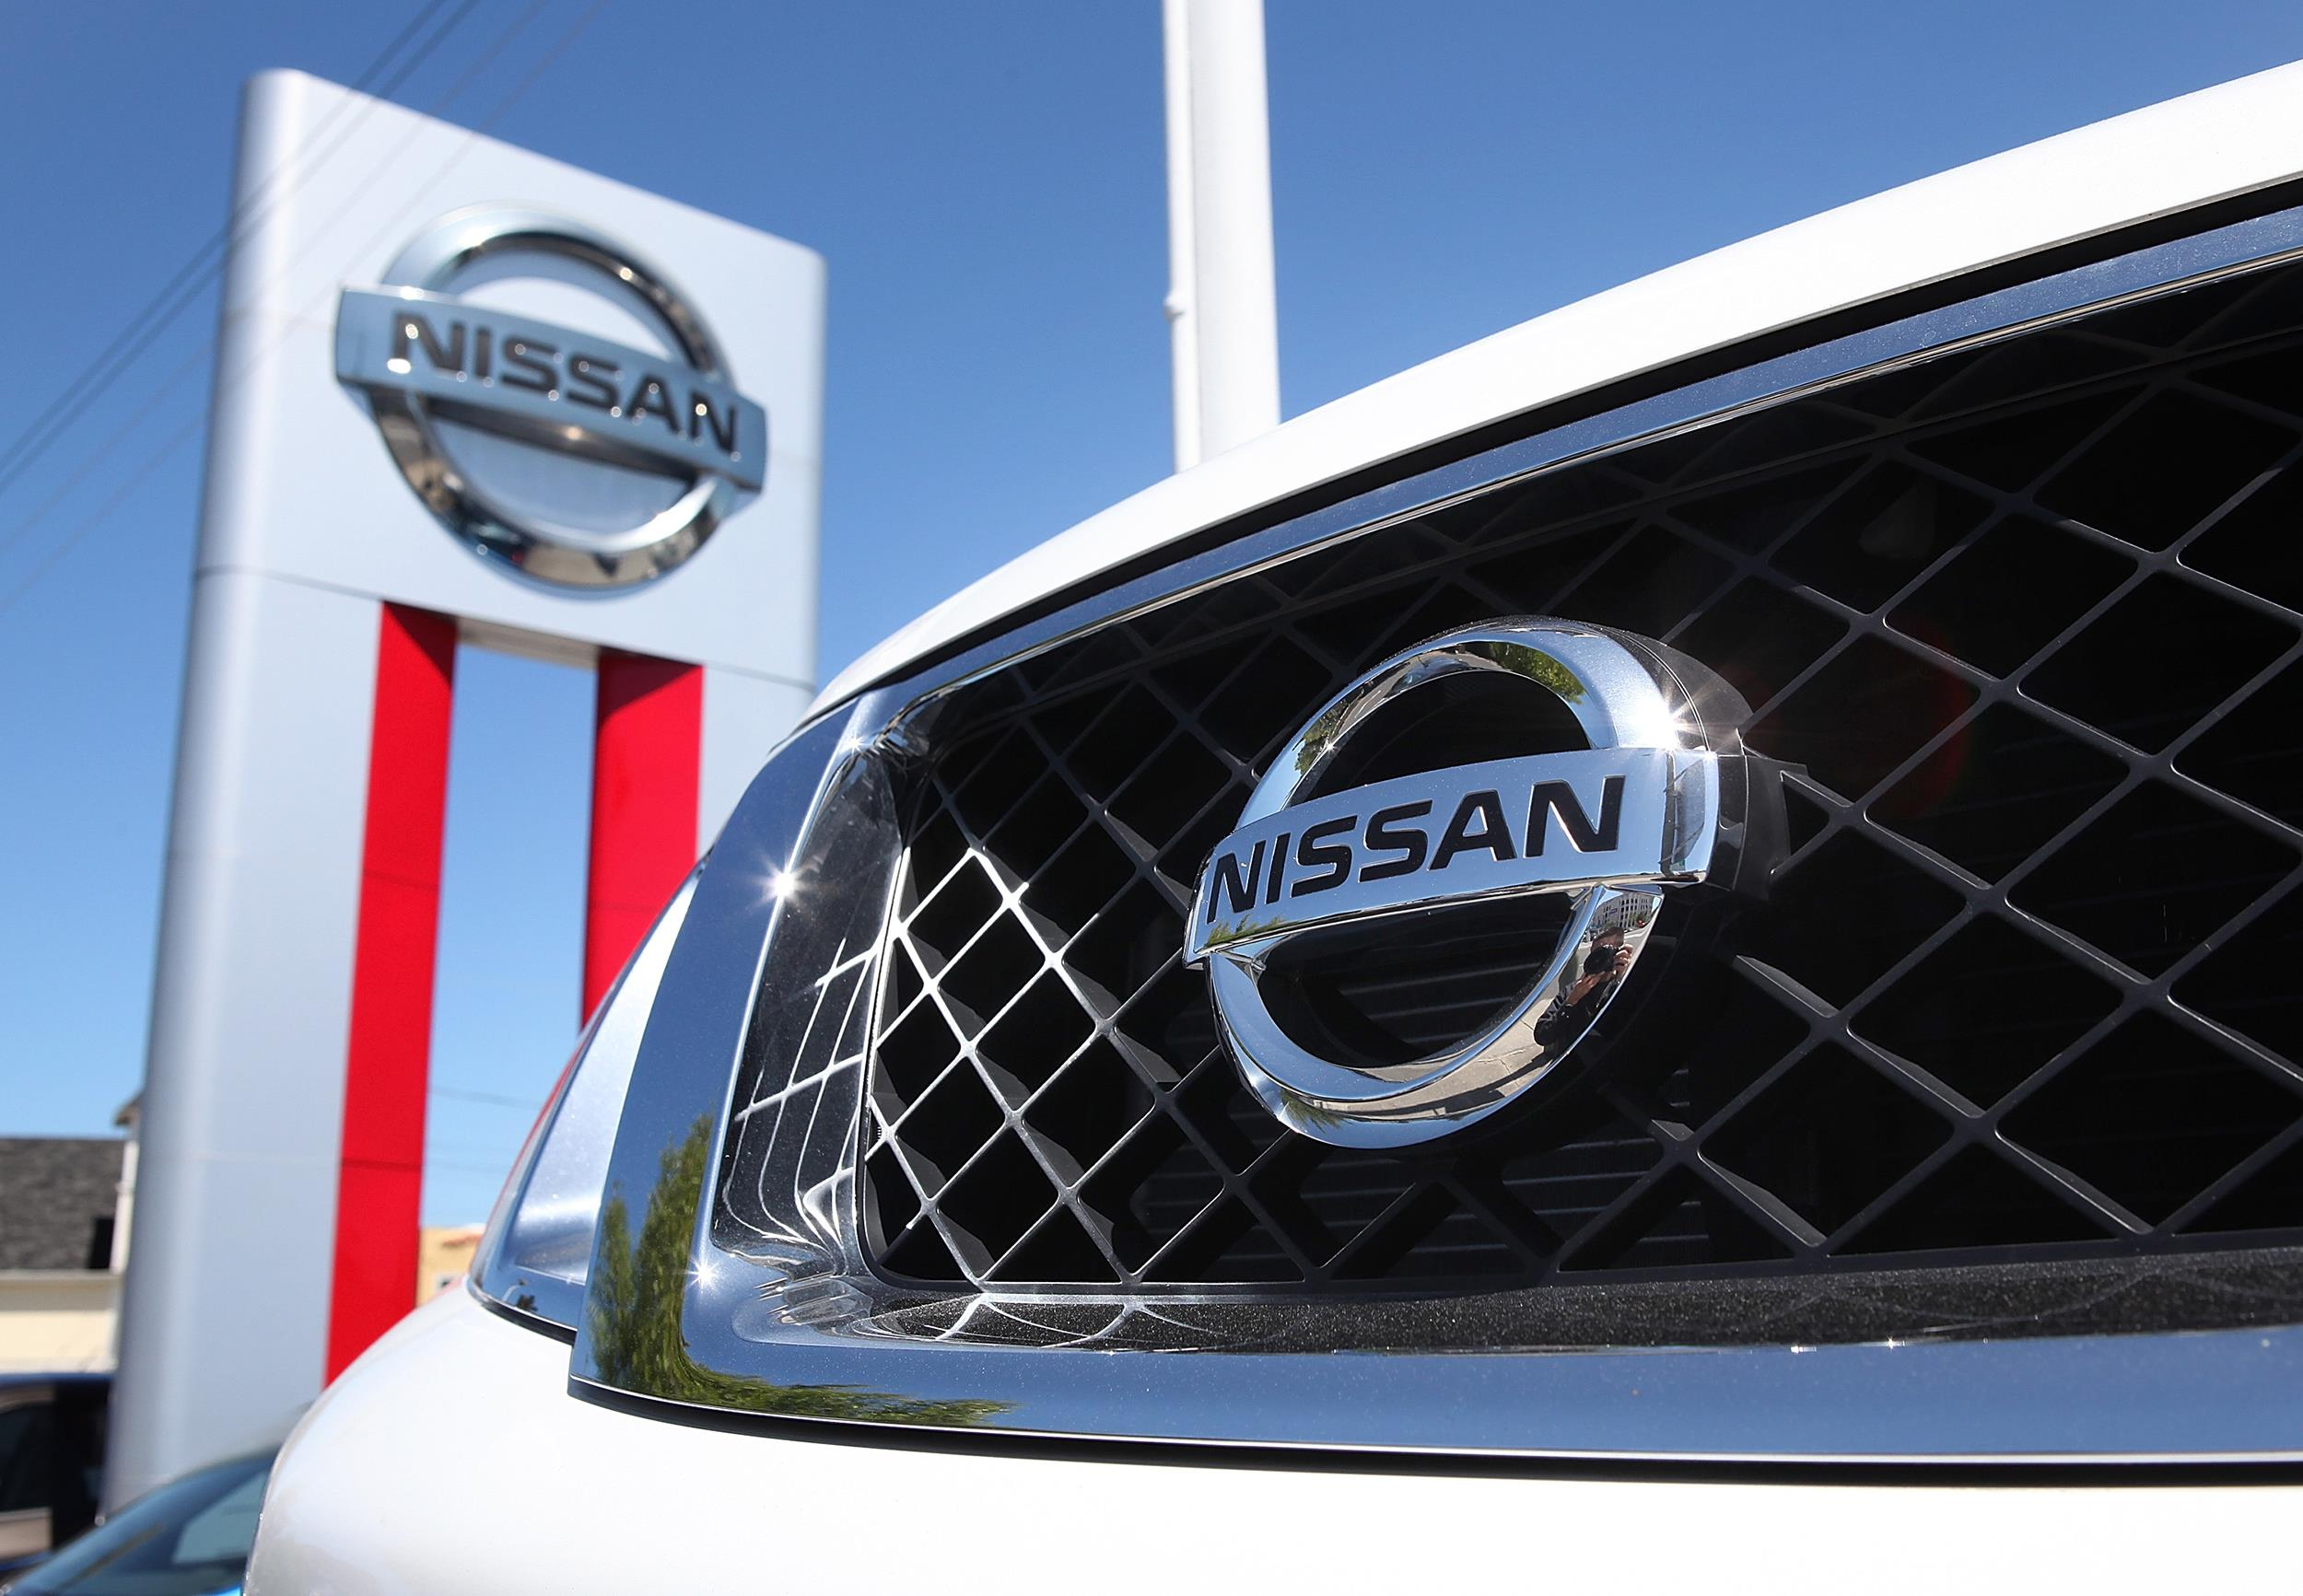 Image: The Nissan logo is seen on the front of a brand new Nissan SUV at a Nissan dealership in Millbrae, Calif.